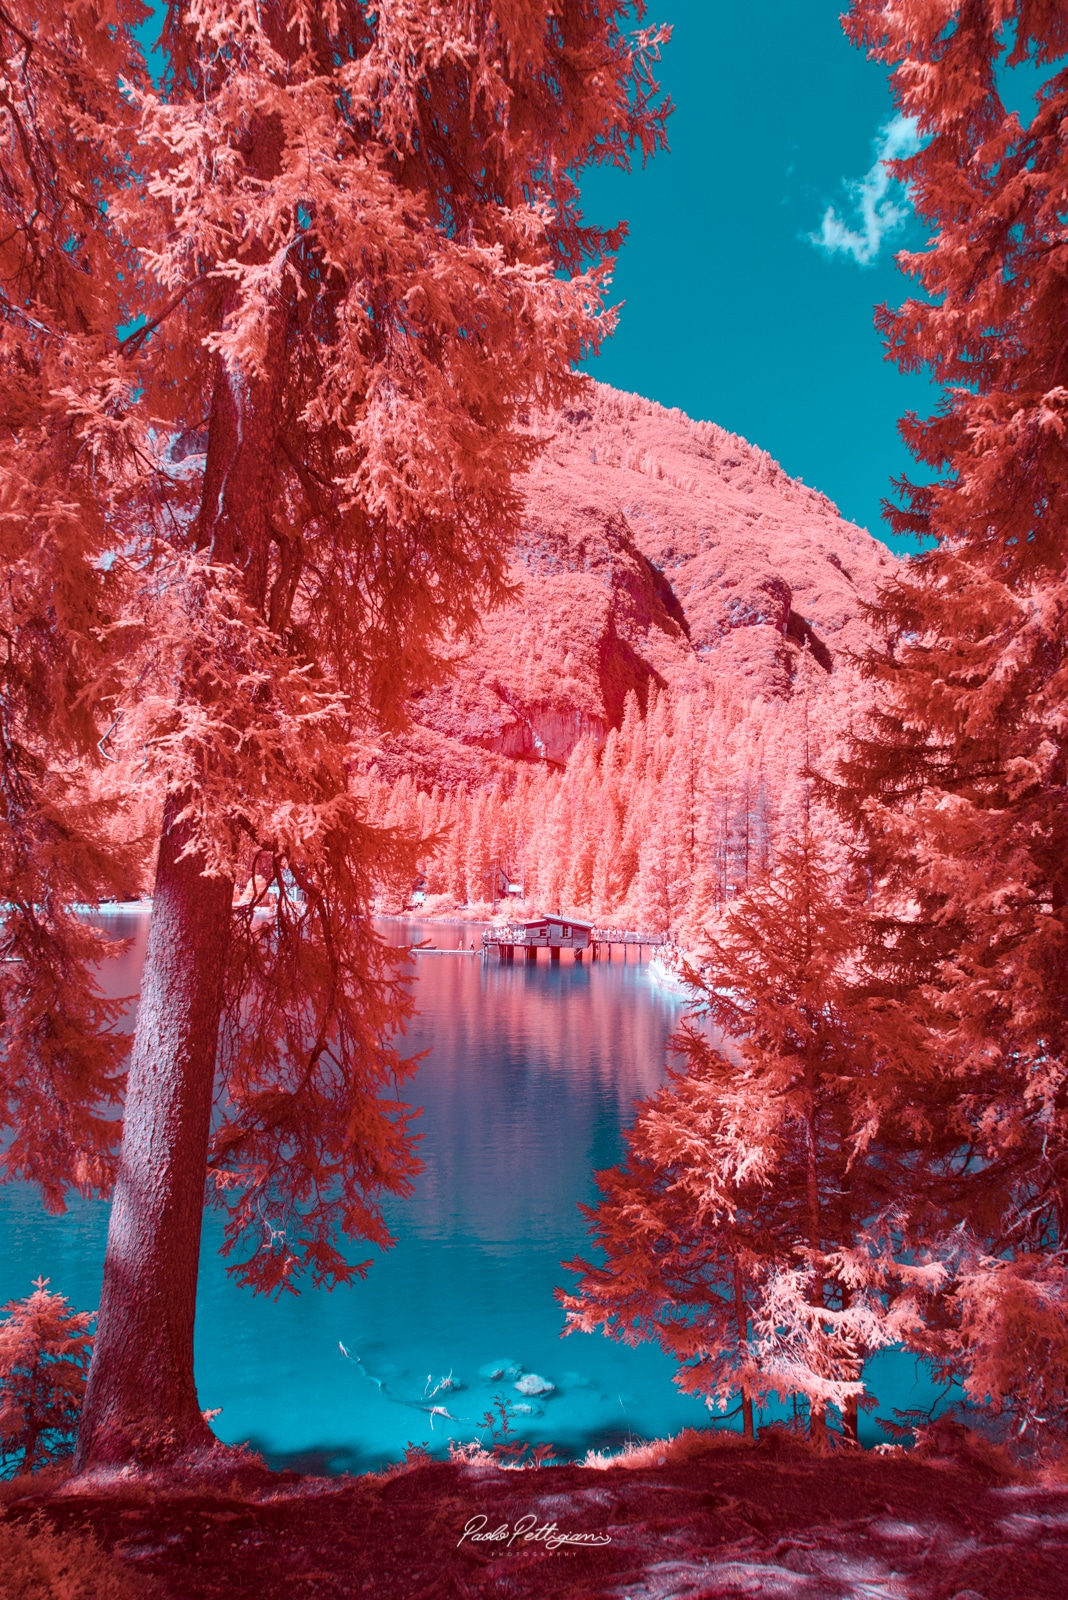 Infrared Photography Paolo Pettigiani